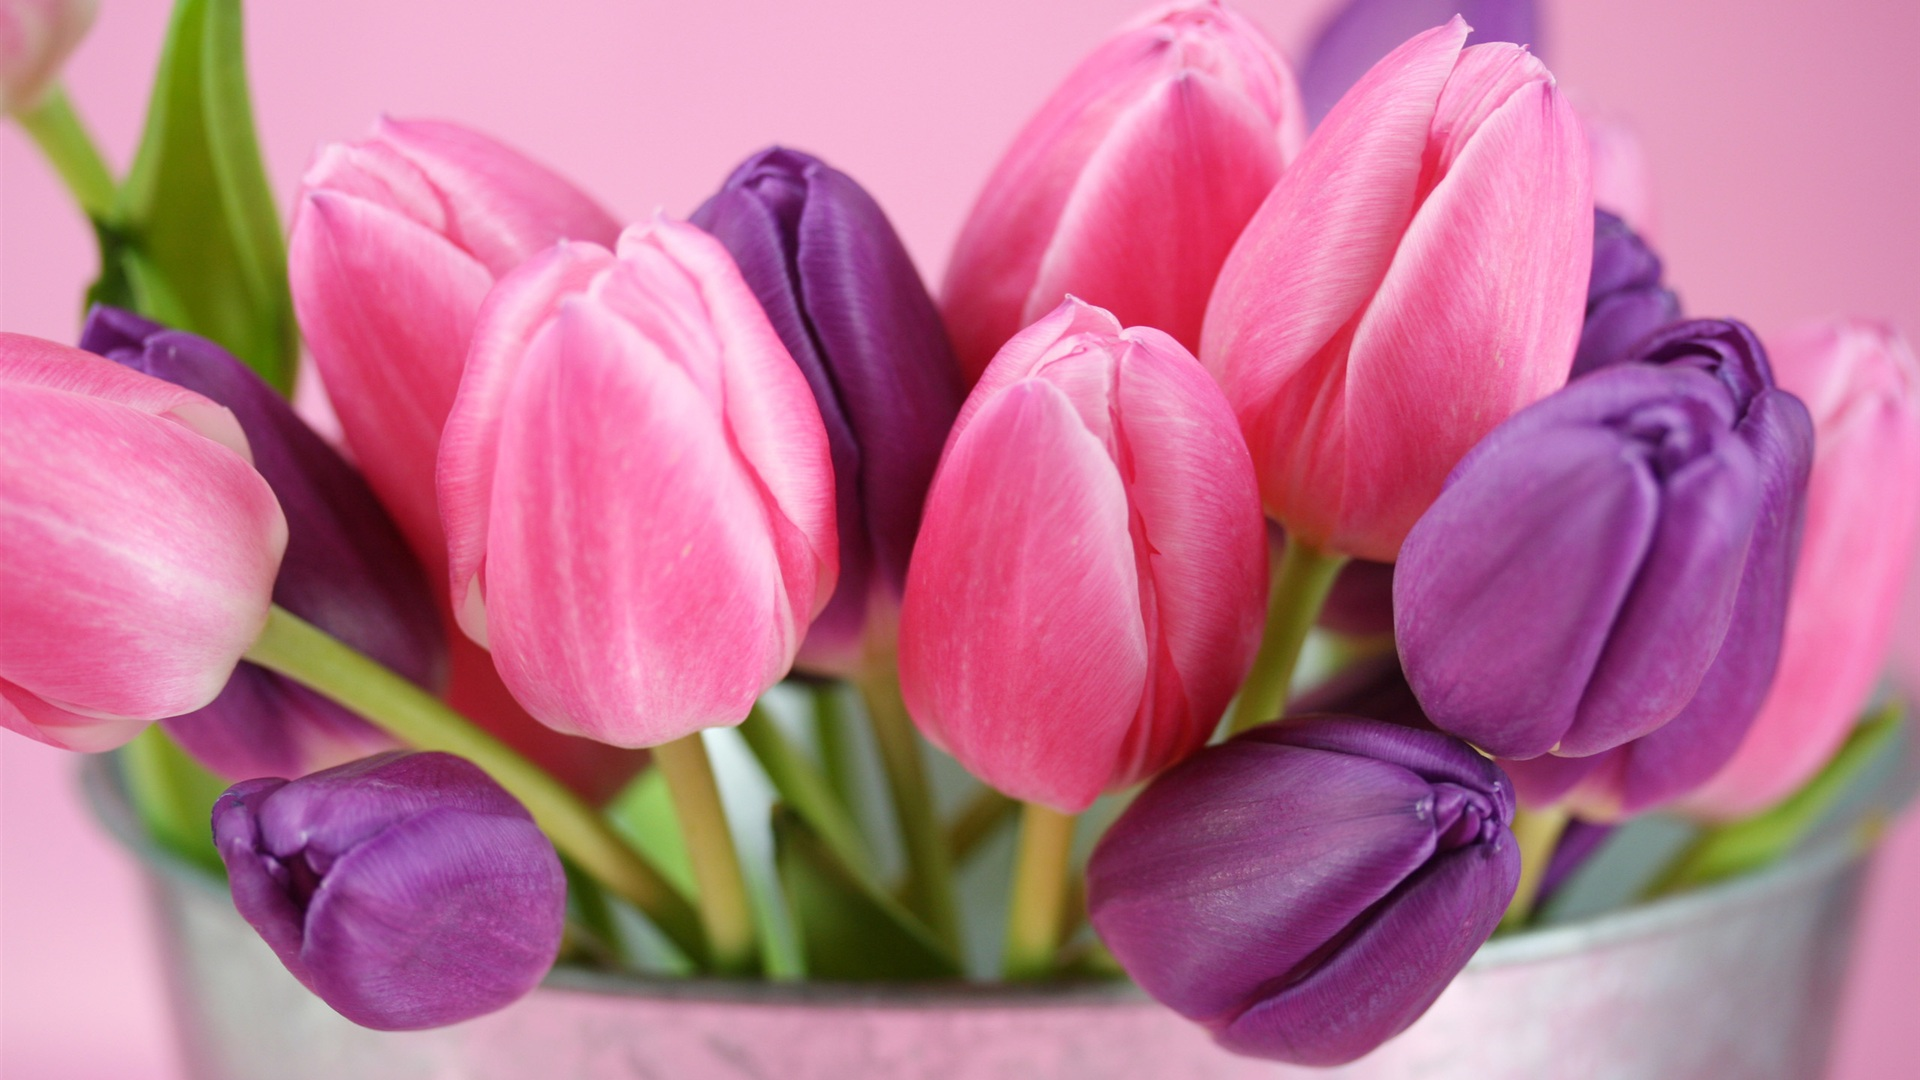 purple tulips hd wallpaper - photo #22